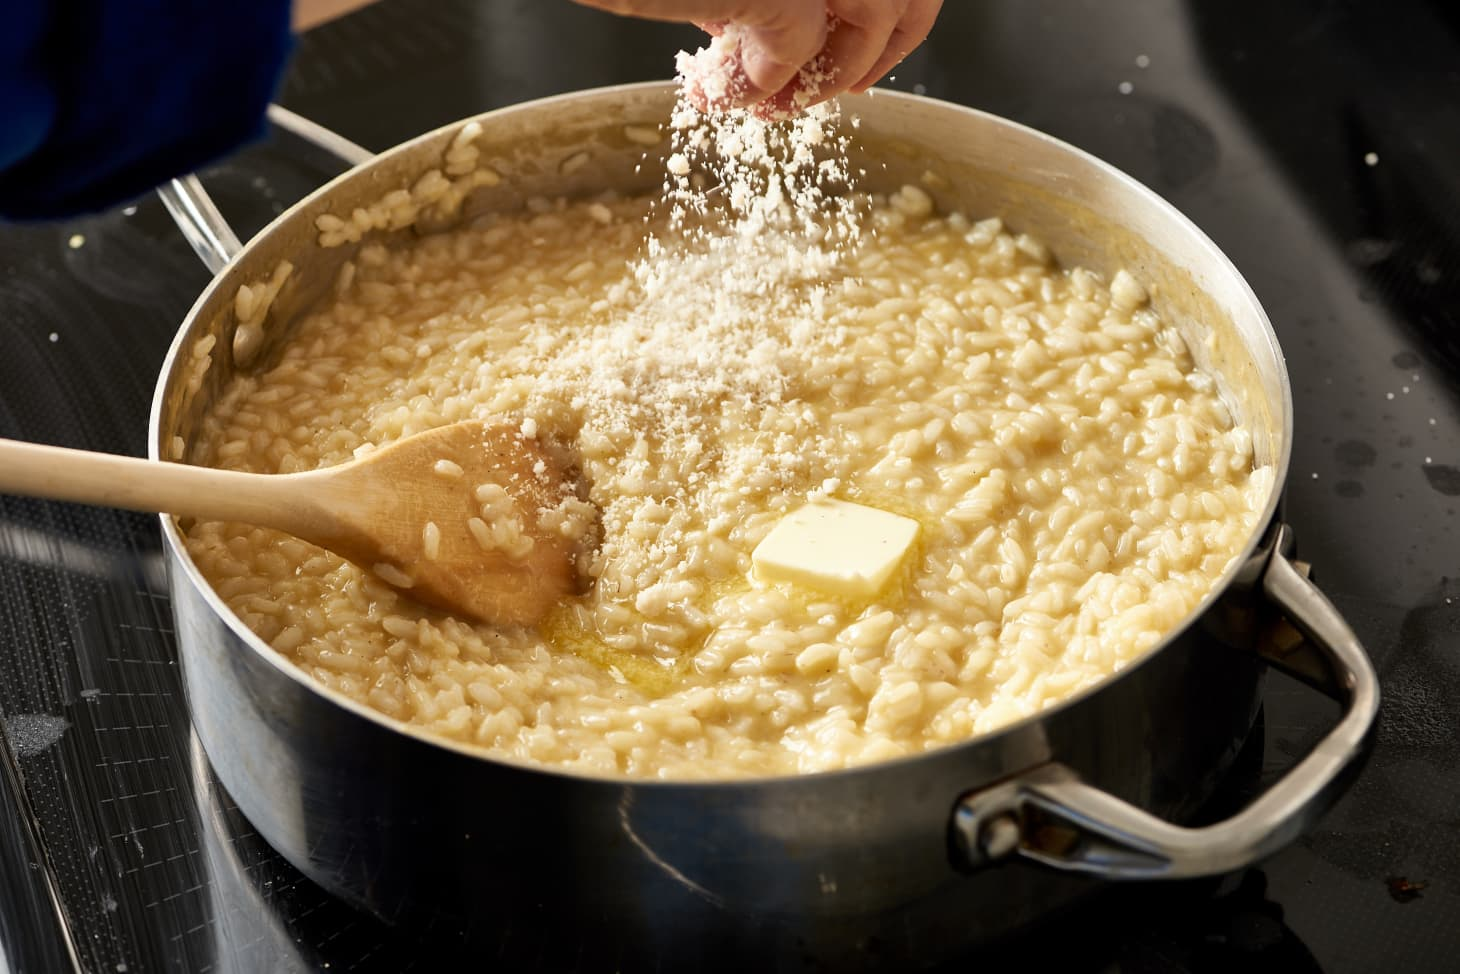 How To Make Risotto at Home